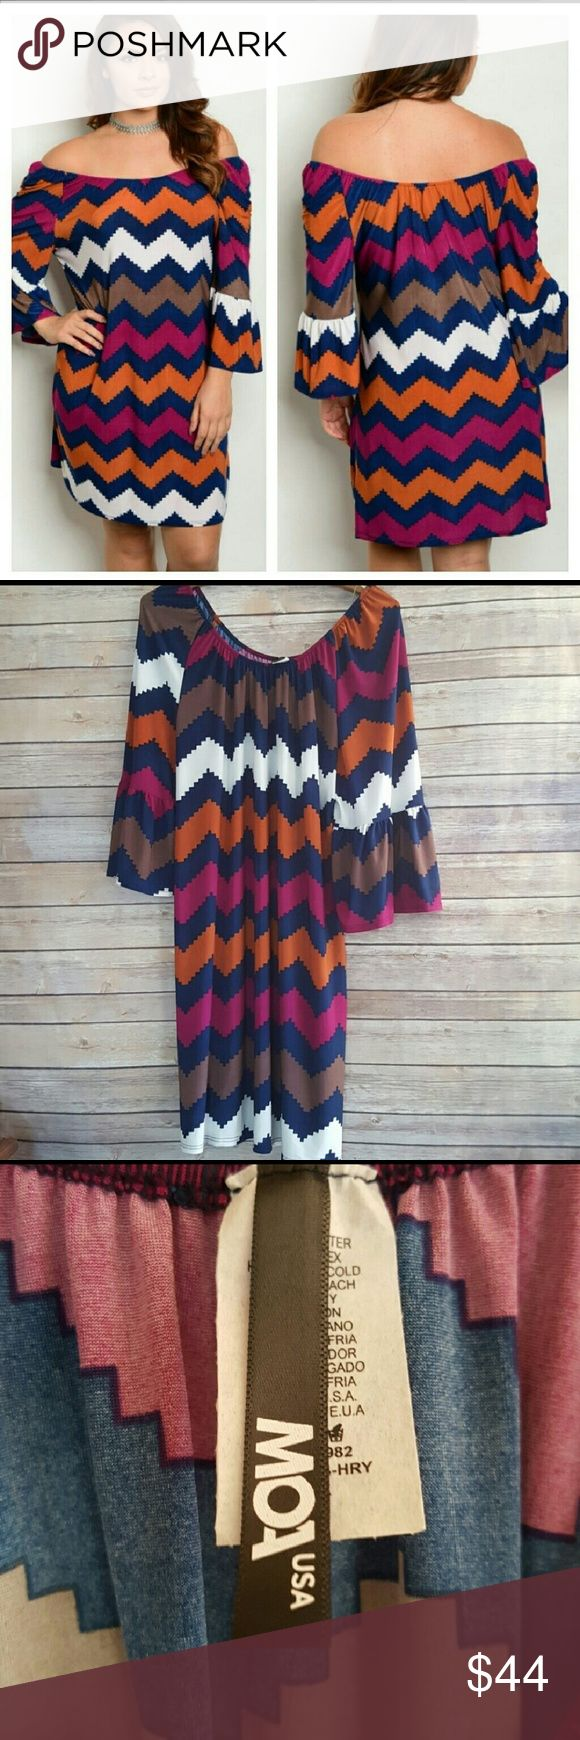 "New Plus Size off Shoulder Chevron Print Dress New without tags Off Shoulder, Chevron printed summer dress 3/4 length sleeve  96% Polyester  4% Spandex  Length approx 37"" Available in plus sizes 1X 2X and 3X Navy Blue, White, Orange, Purple/Fuchsia, Brown Made in the USA   Color patterns vary by dress, may not be identical to stock photograph. MOA USA Dresses Mini"